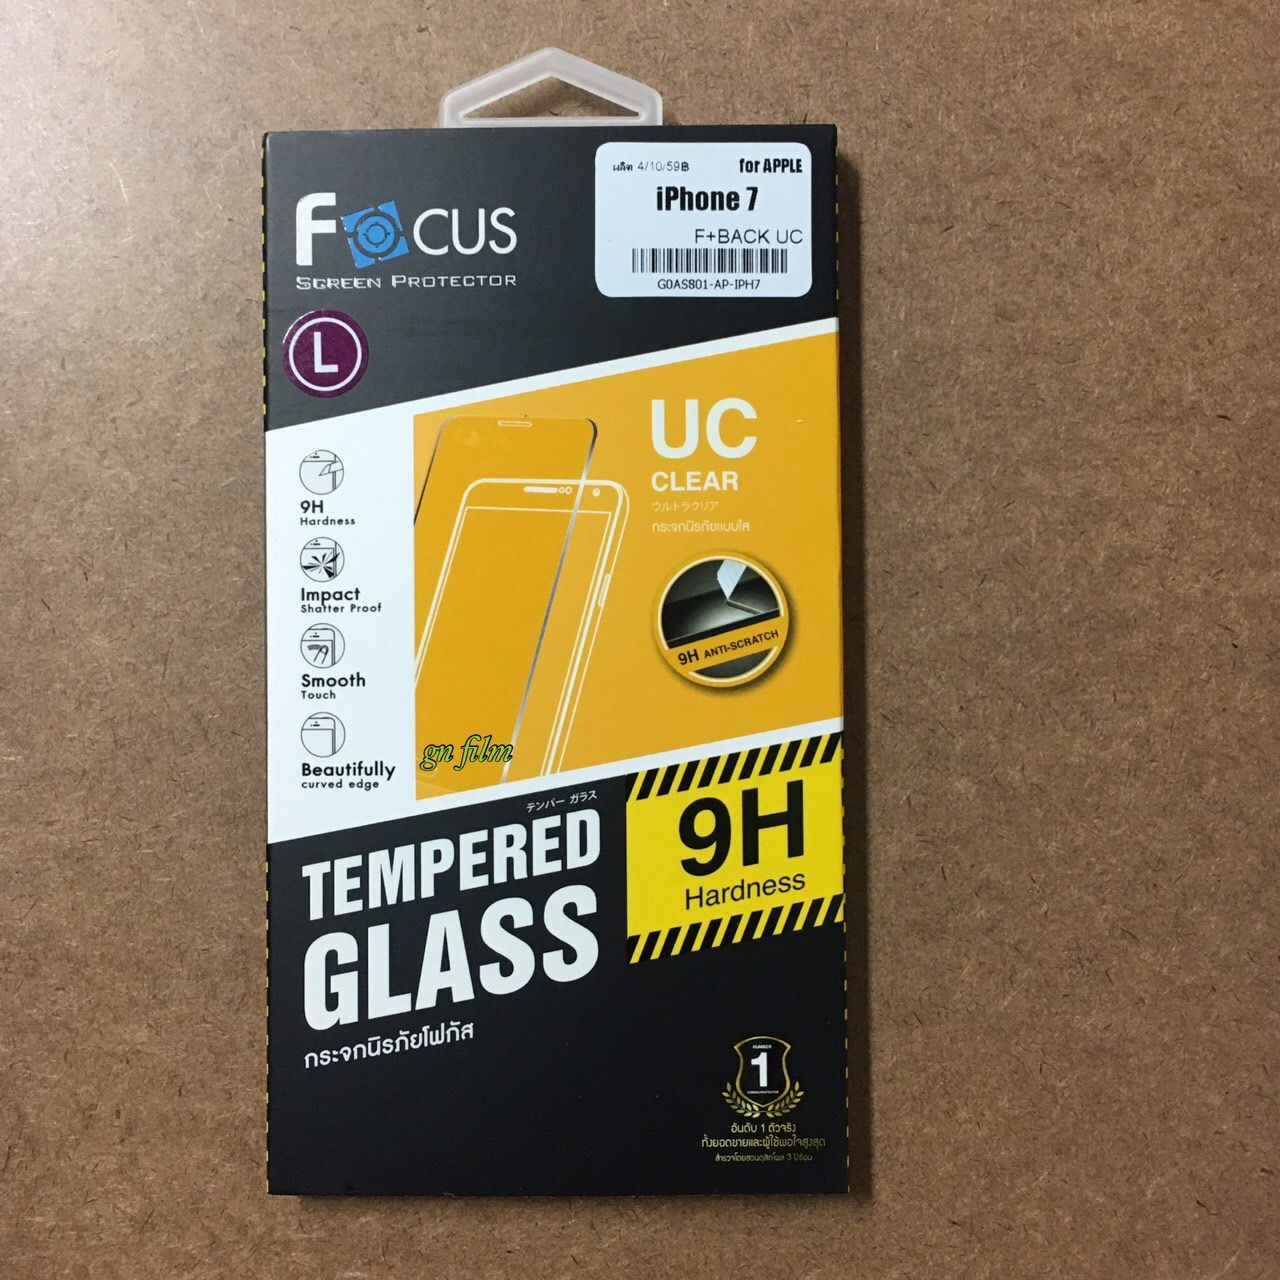 Iphone 7 (หน้า-หลัง) - กระจกนิรภัยแบบใสปกติ Tempered Glass